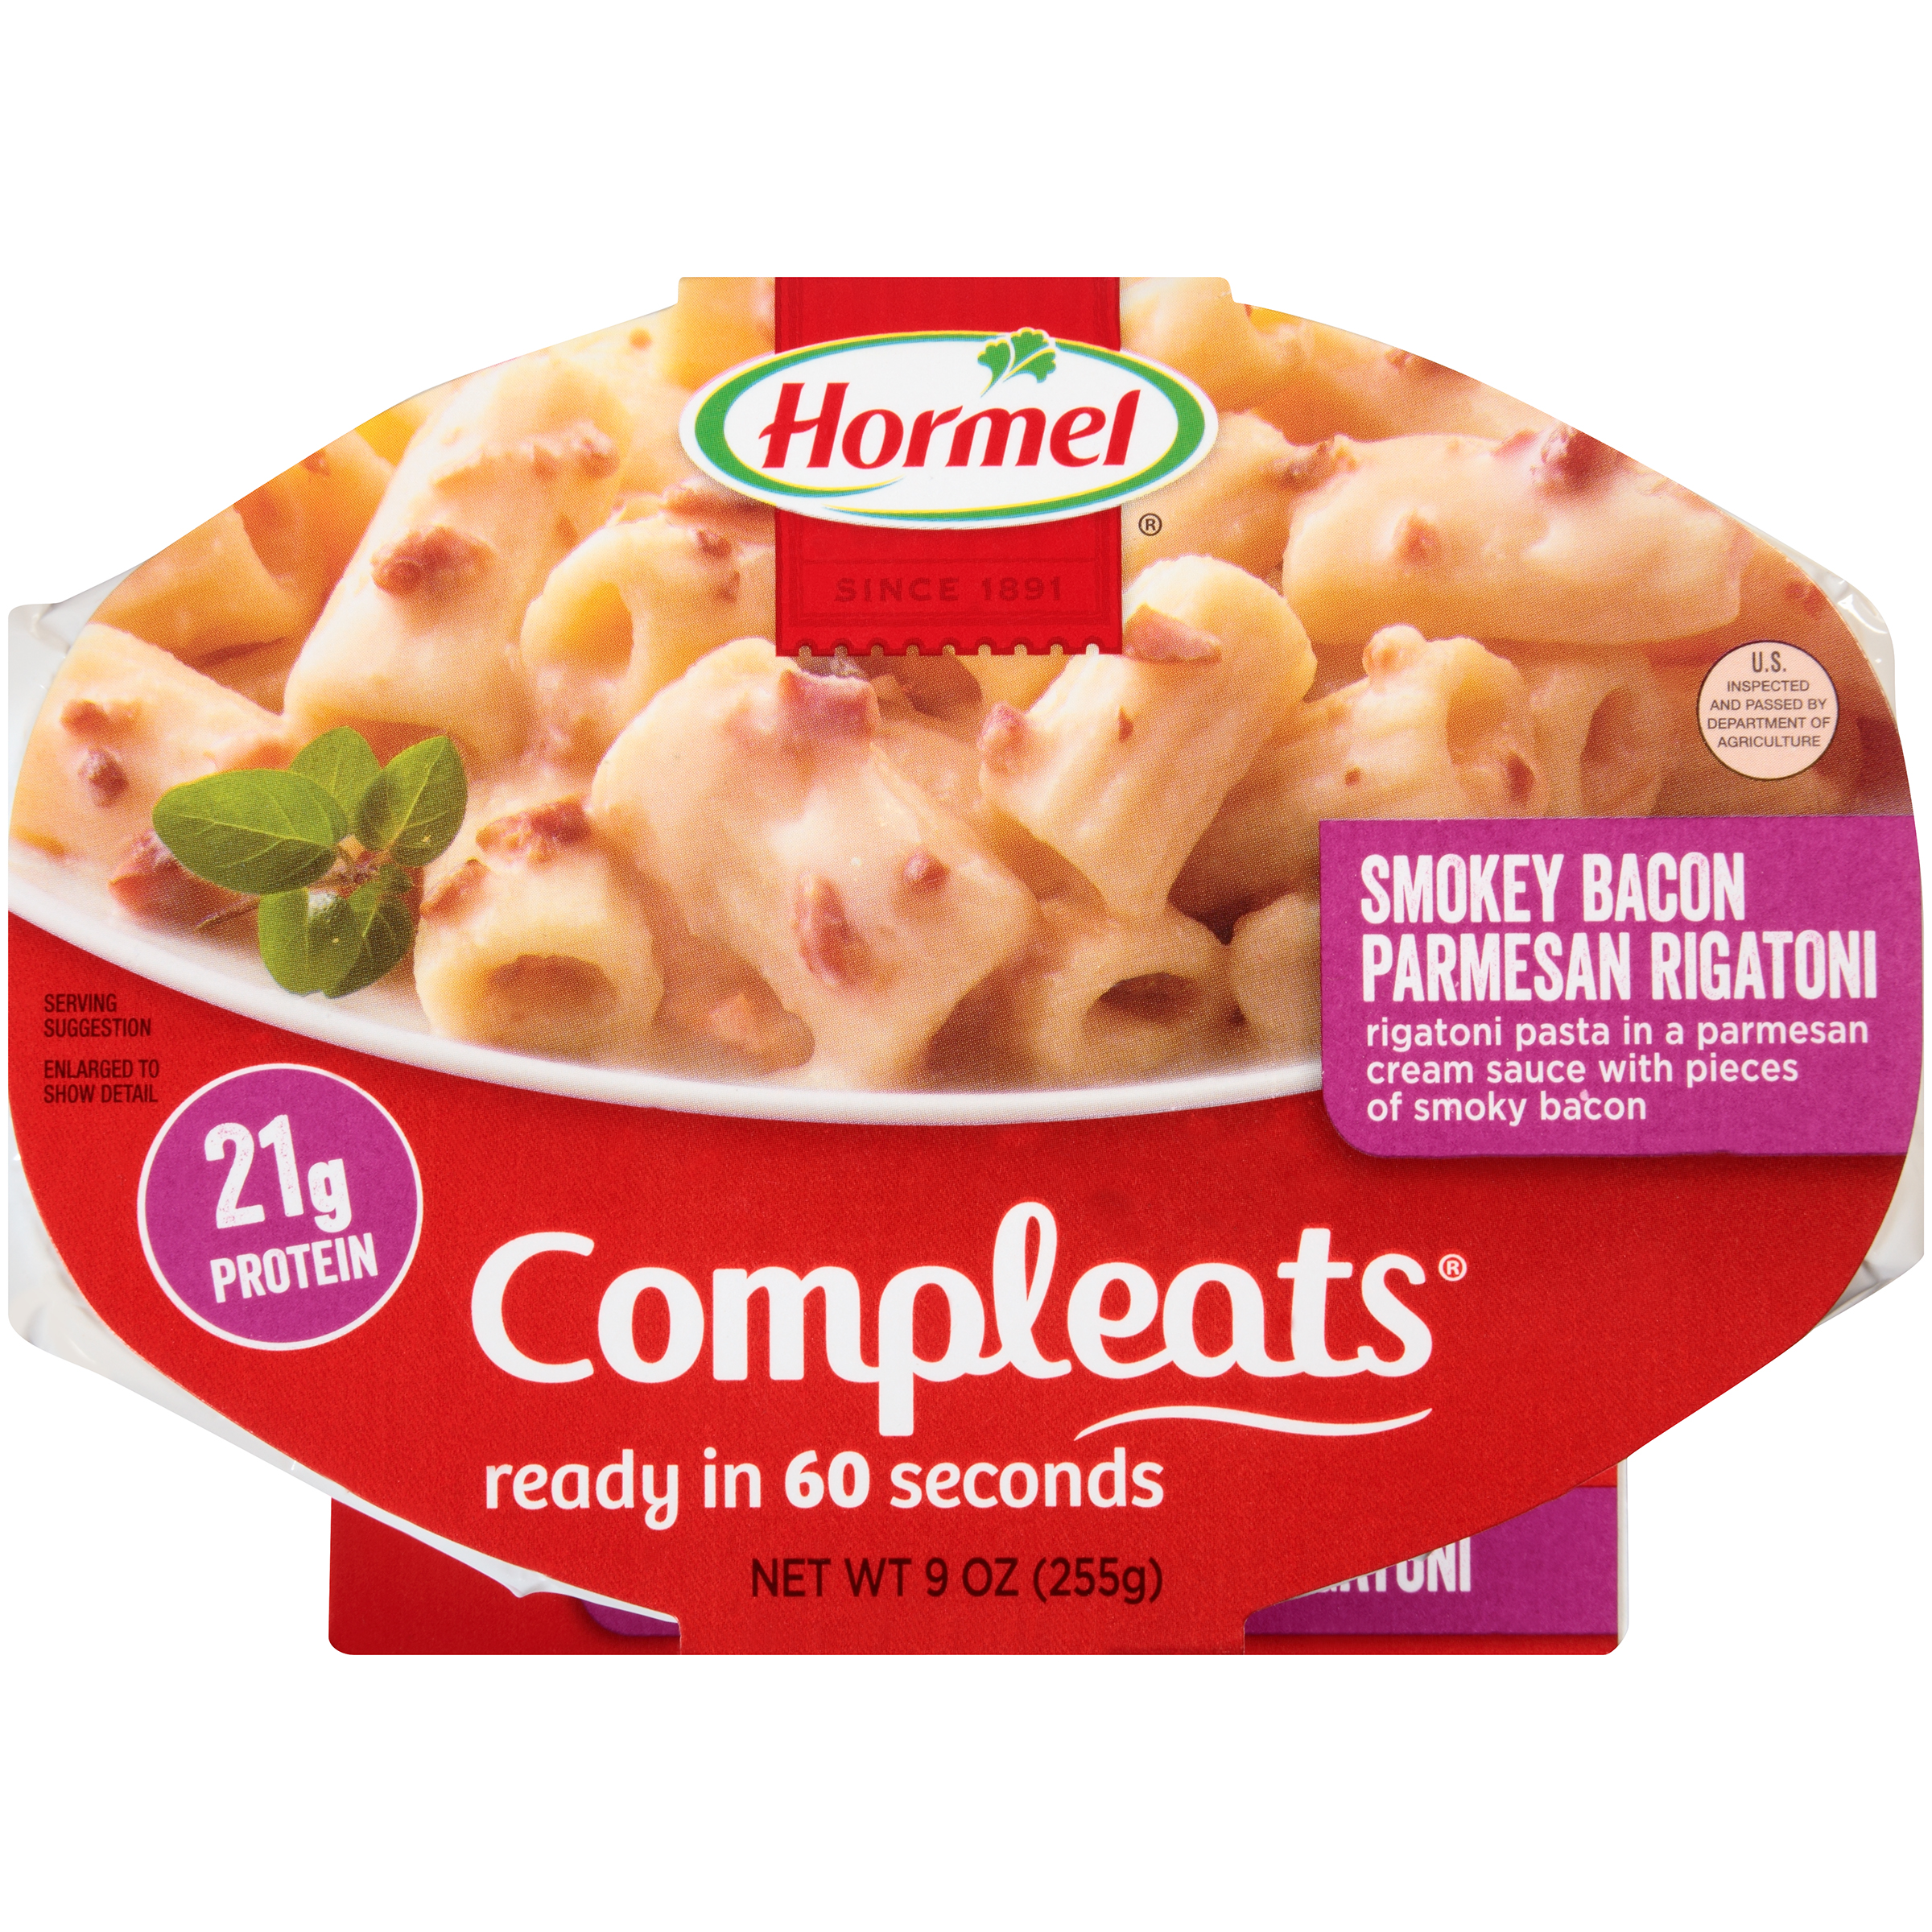 Hormel Smokey Bacon Parmesan Rigatoni Compleats 9 oz. Sleeve by Hormel